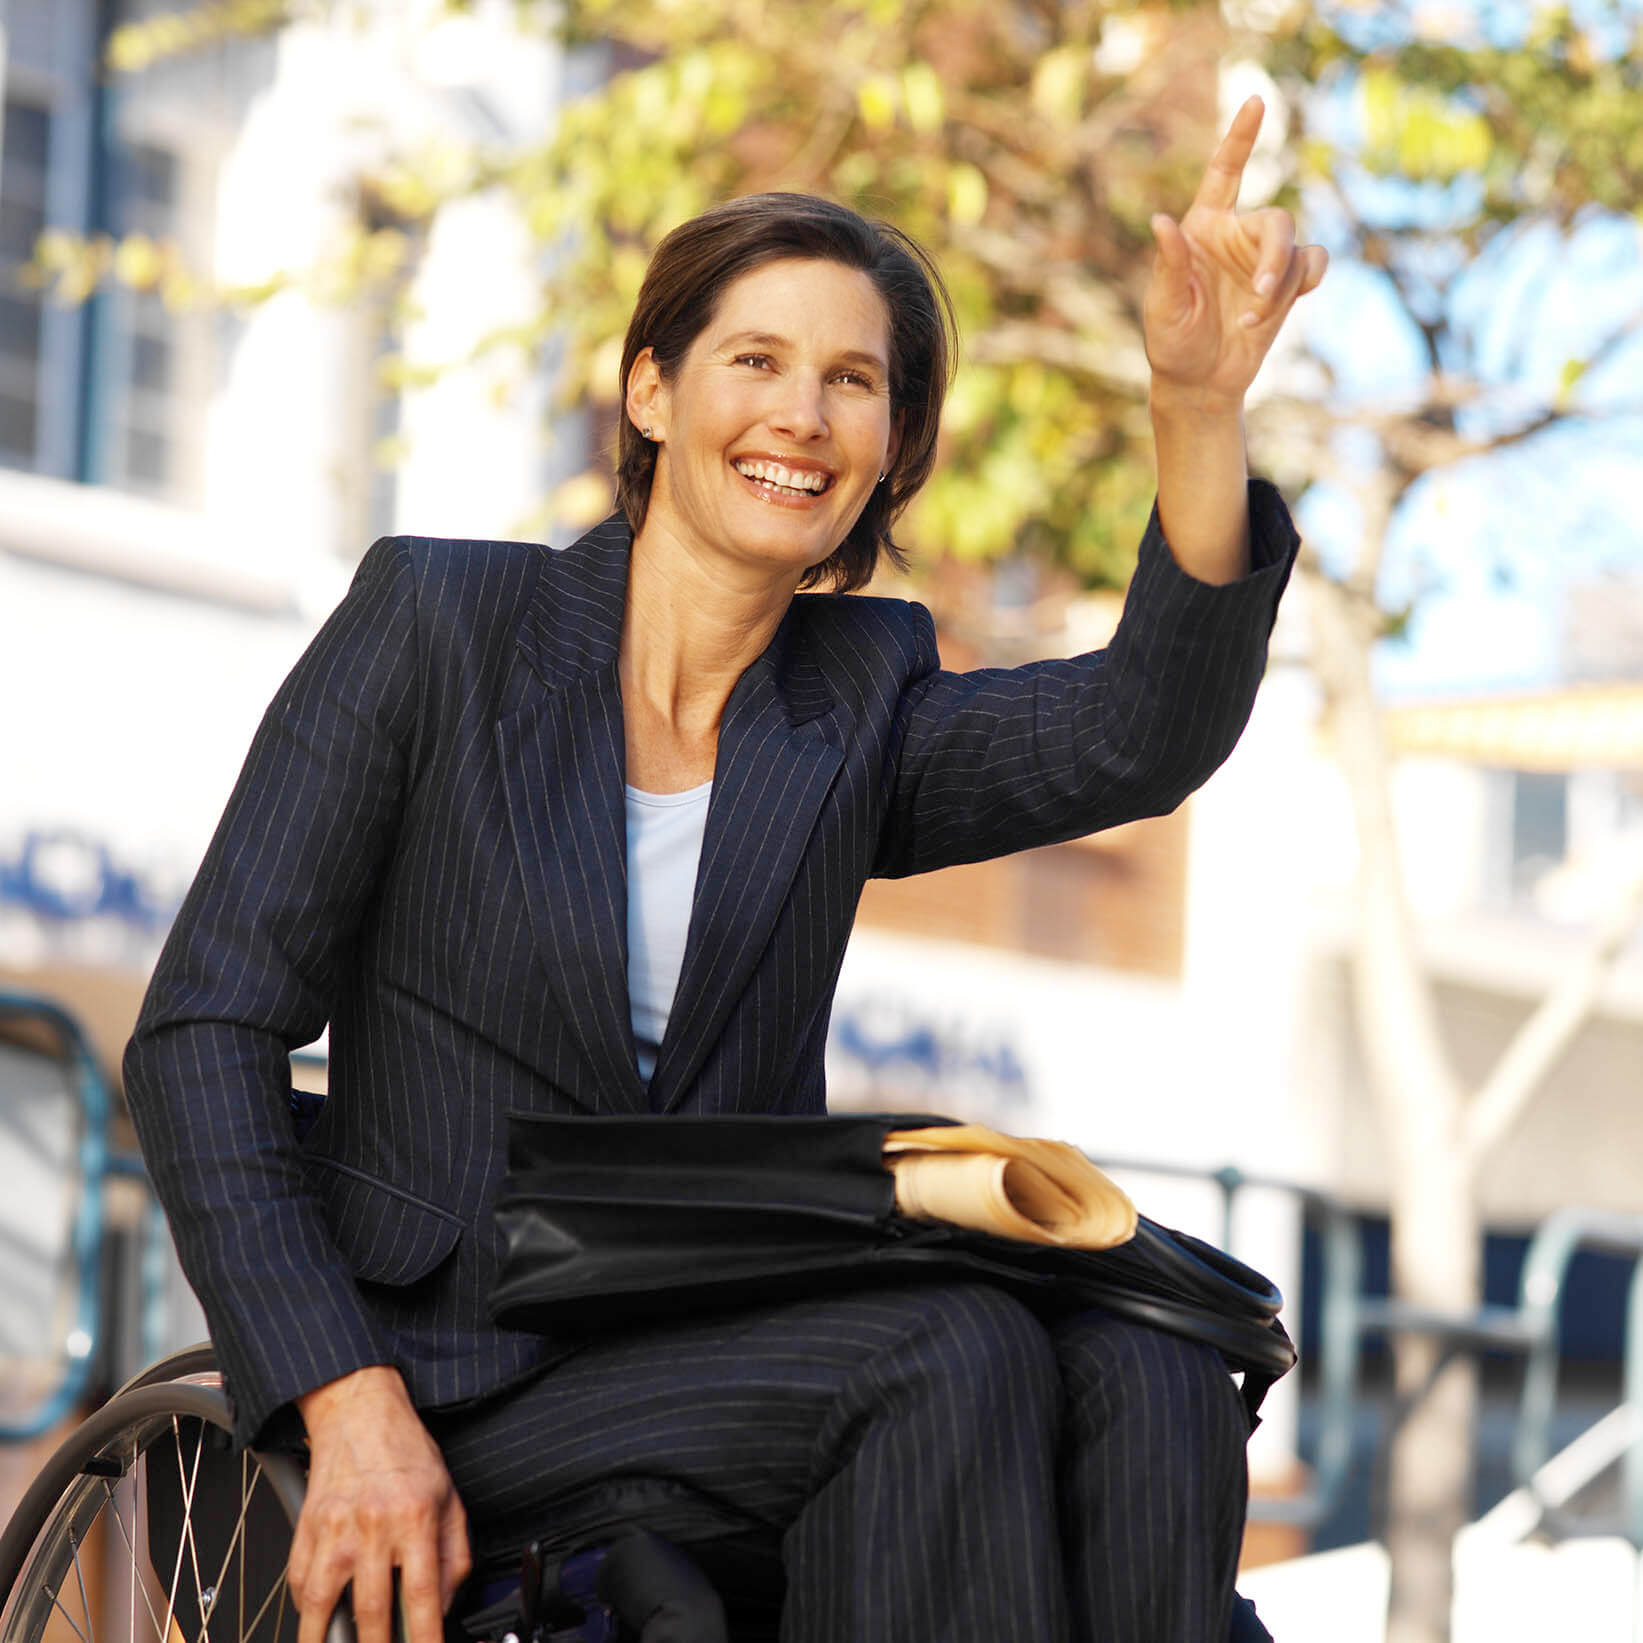 Businesswoman in a wheelchair hailing a taxi